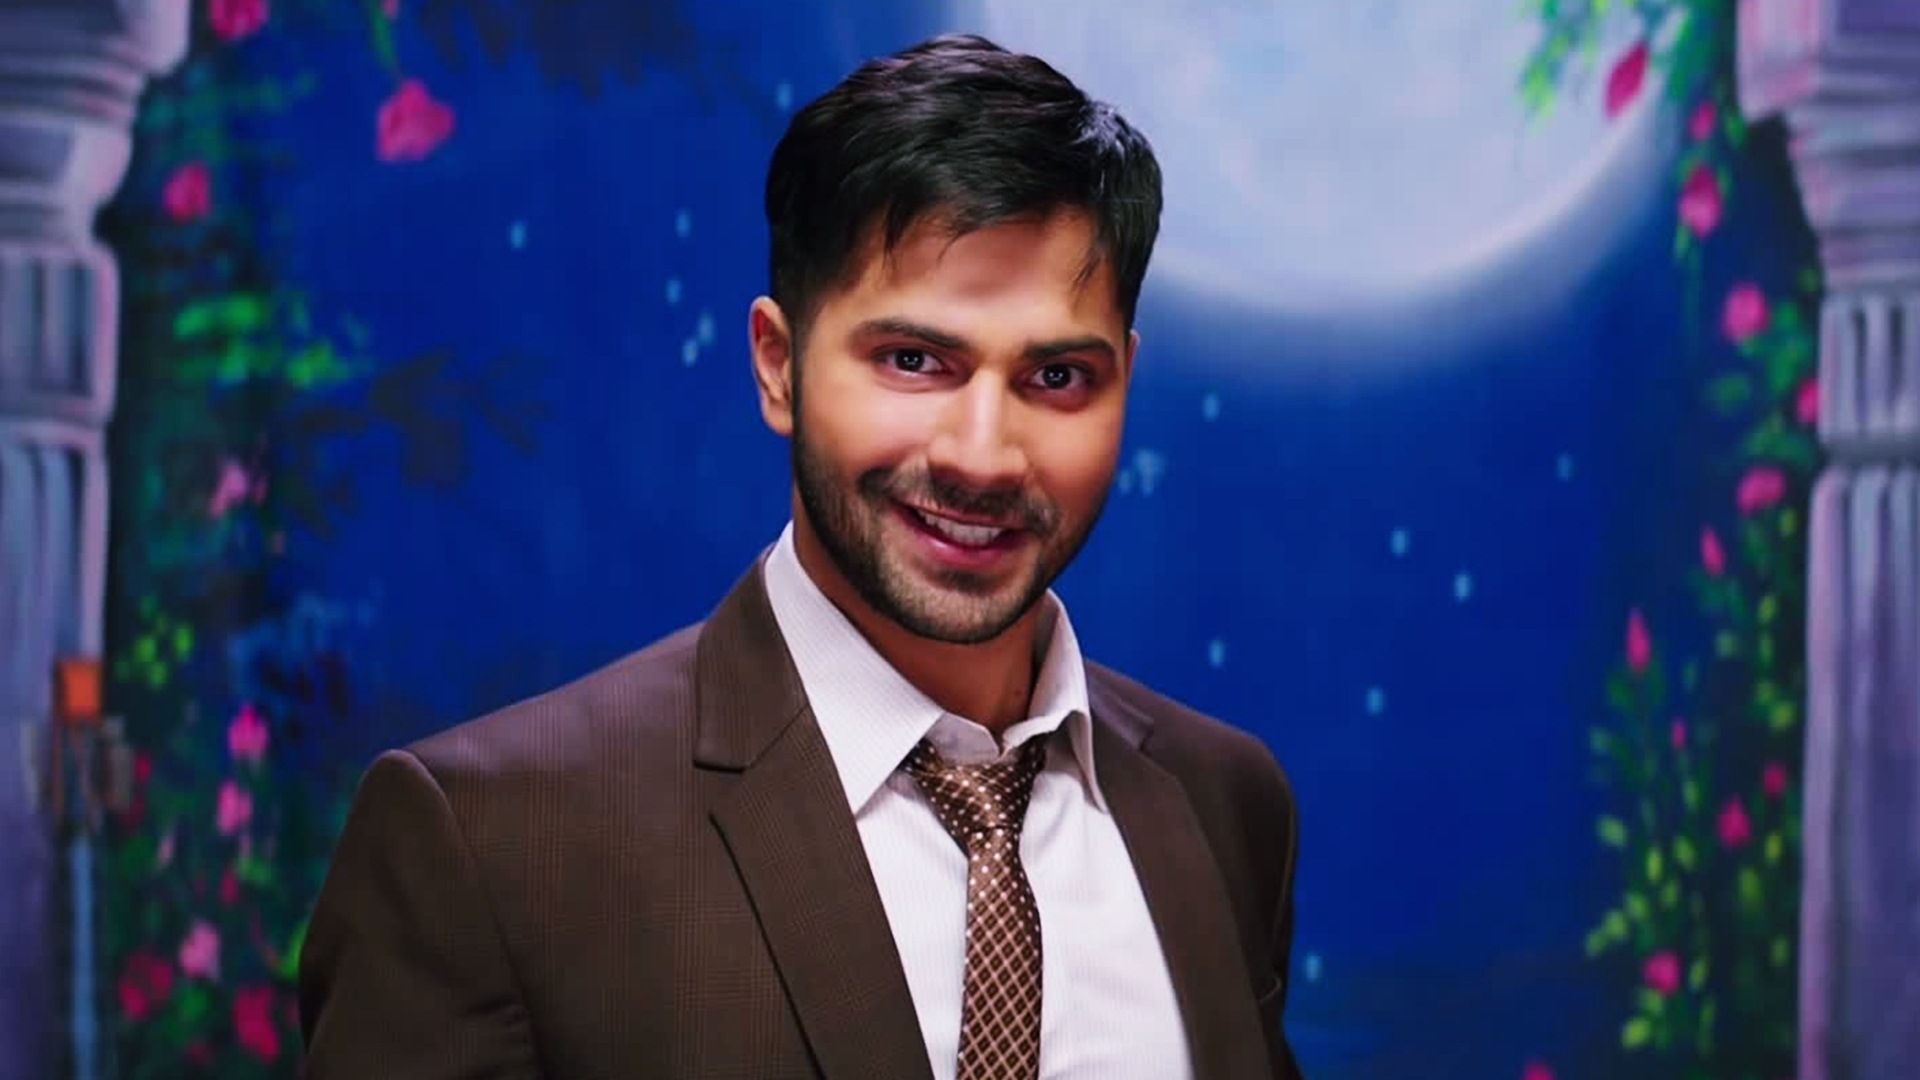 Varun Dhawan Wallpapers High Resolution and Quality Download